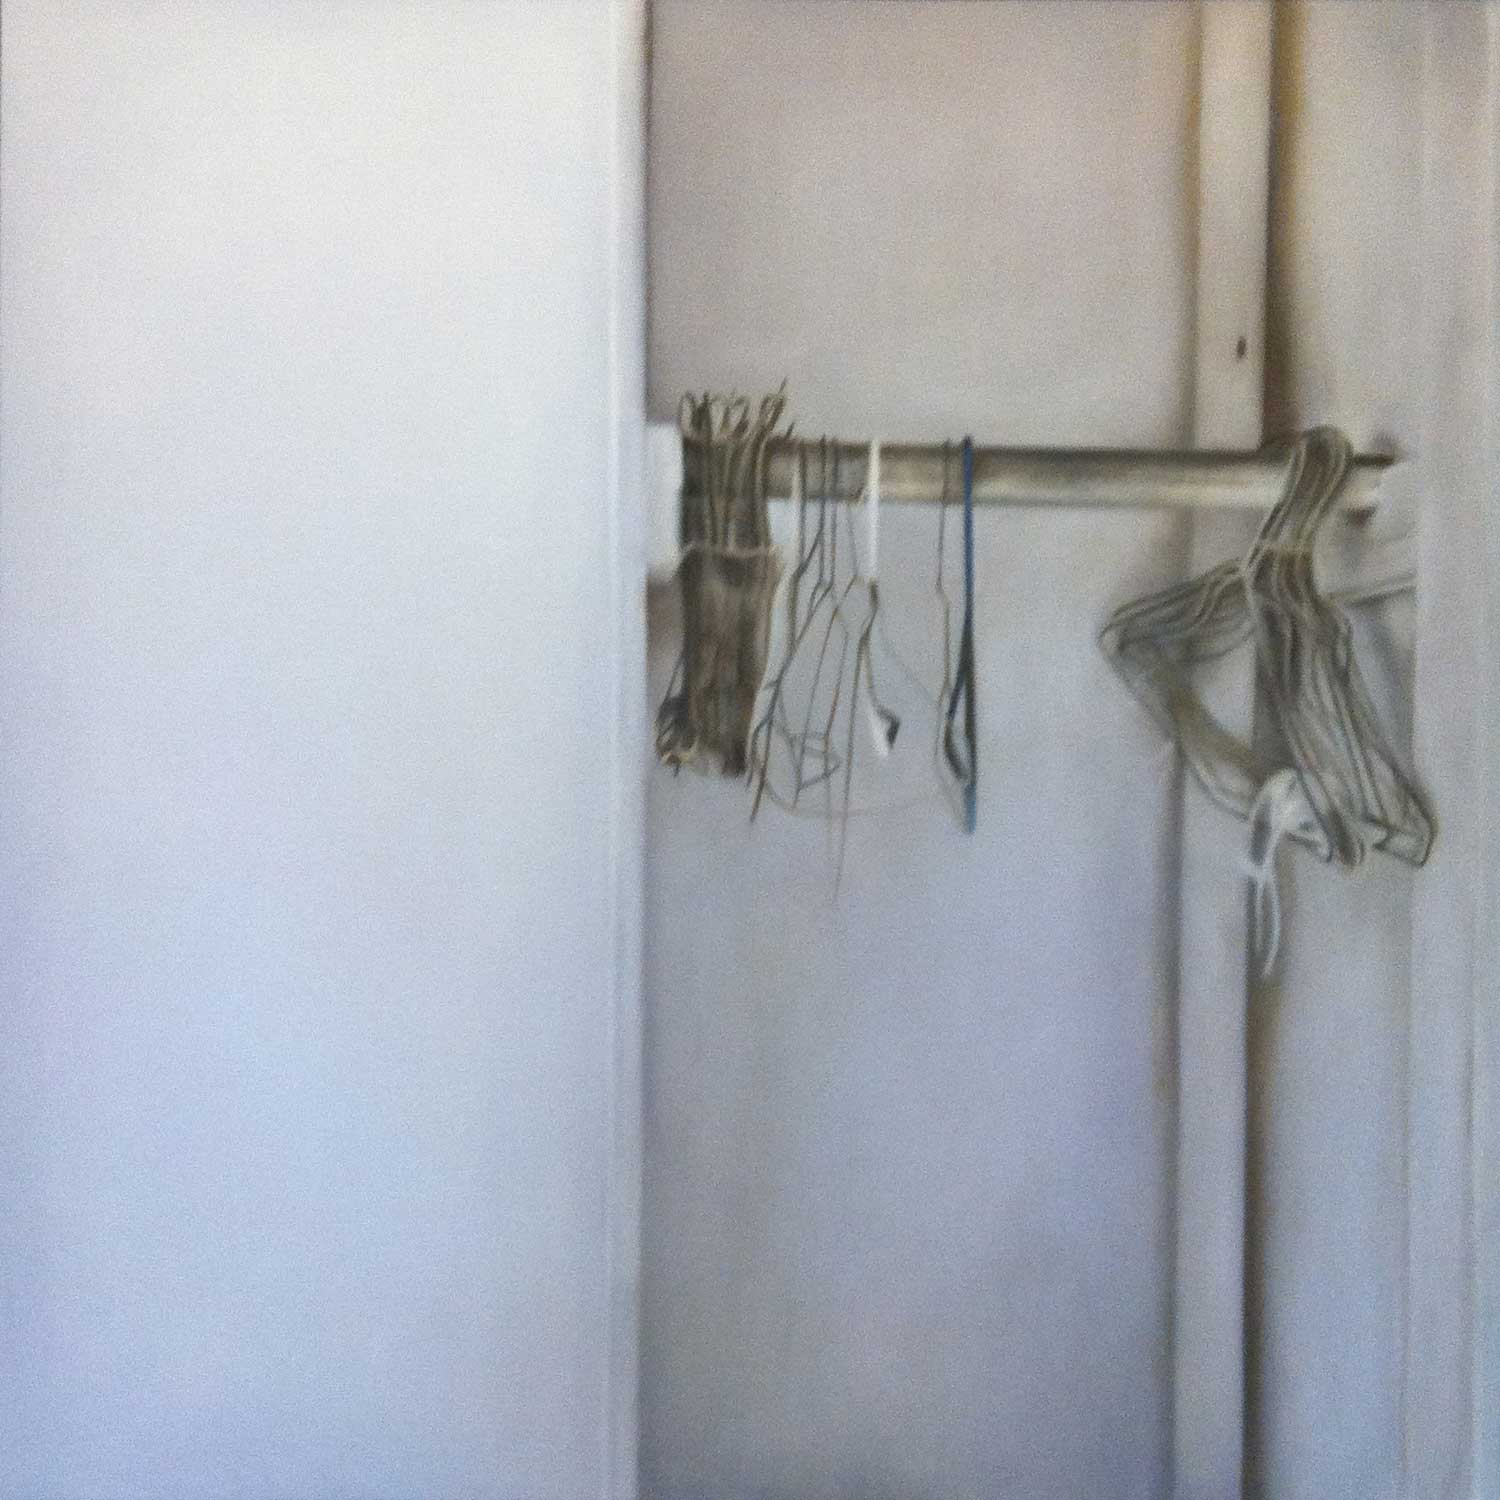 Hanger, 2011 Provinceotwn, MA Oil on canvas 36 x 36 inches